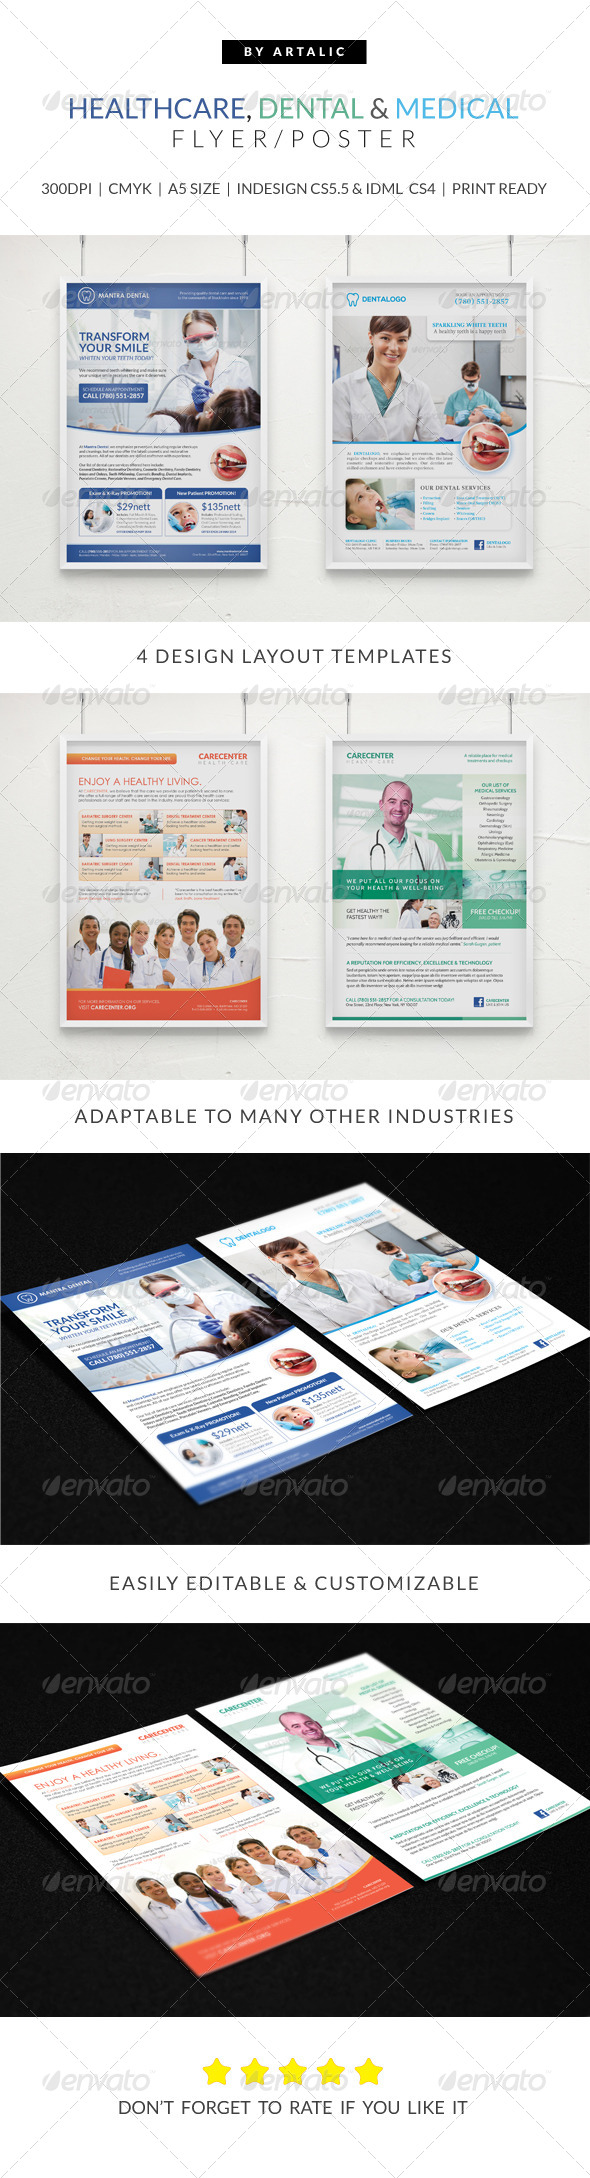 Healthcare medical dental flyer poster pack by artalic for Pharmacy brochure template